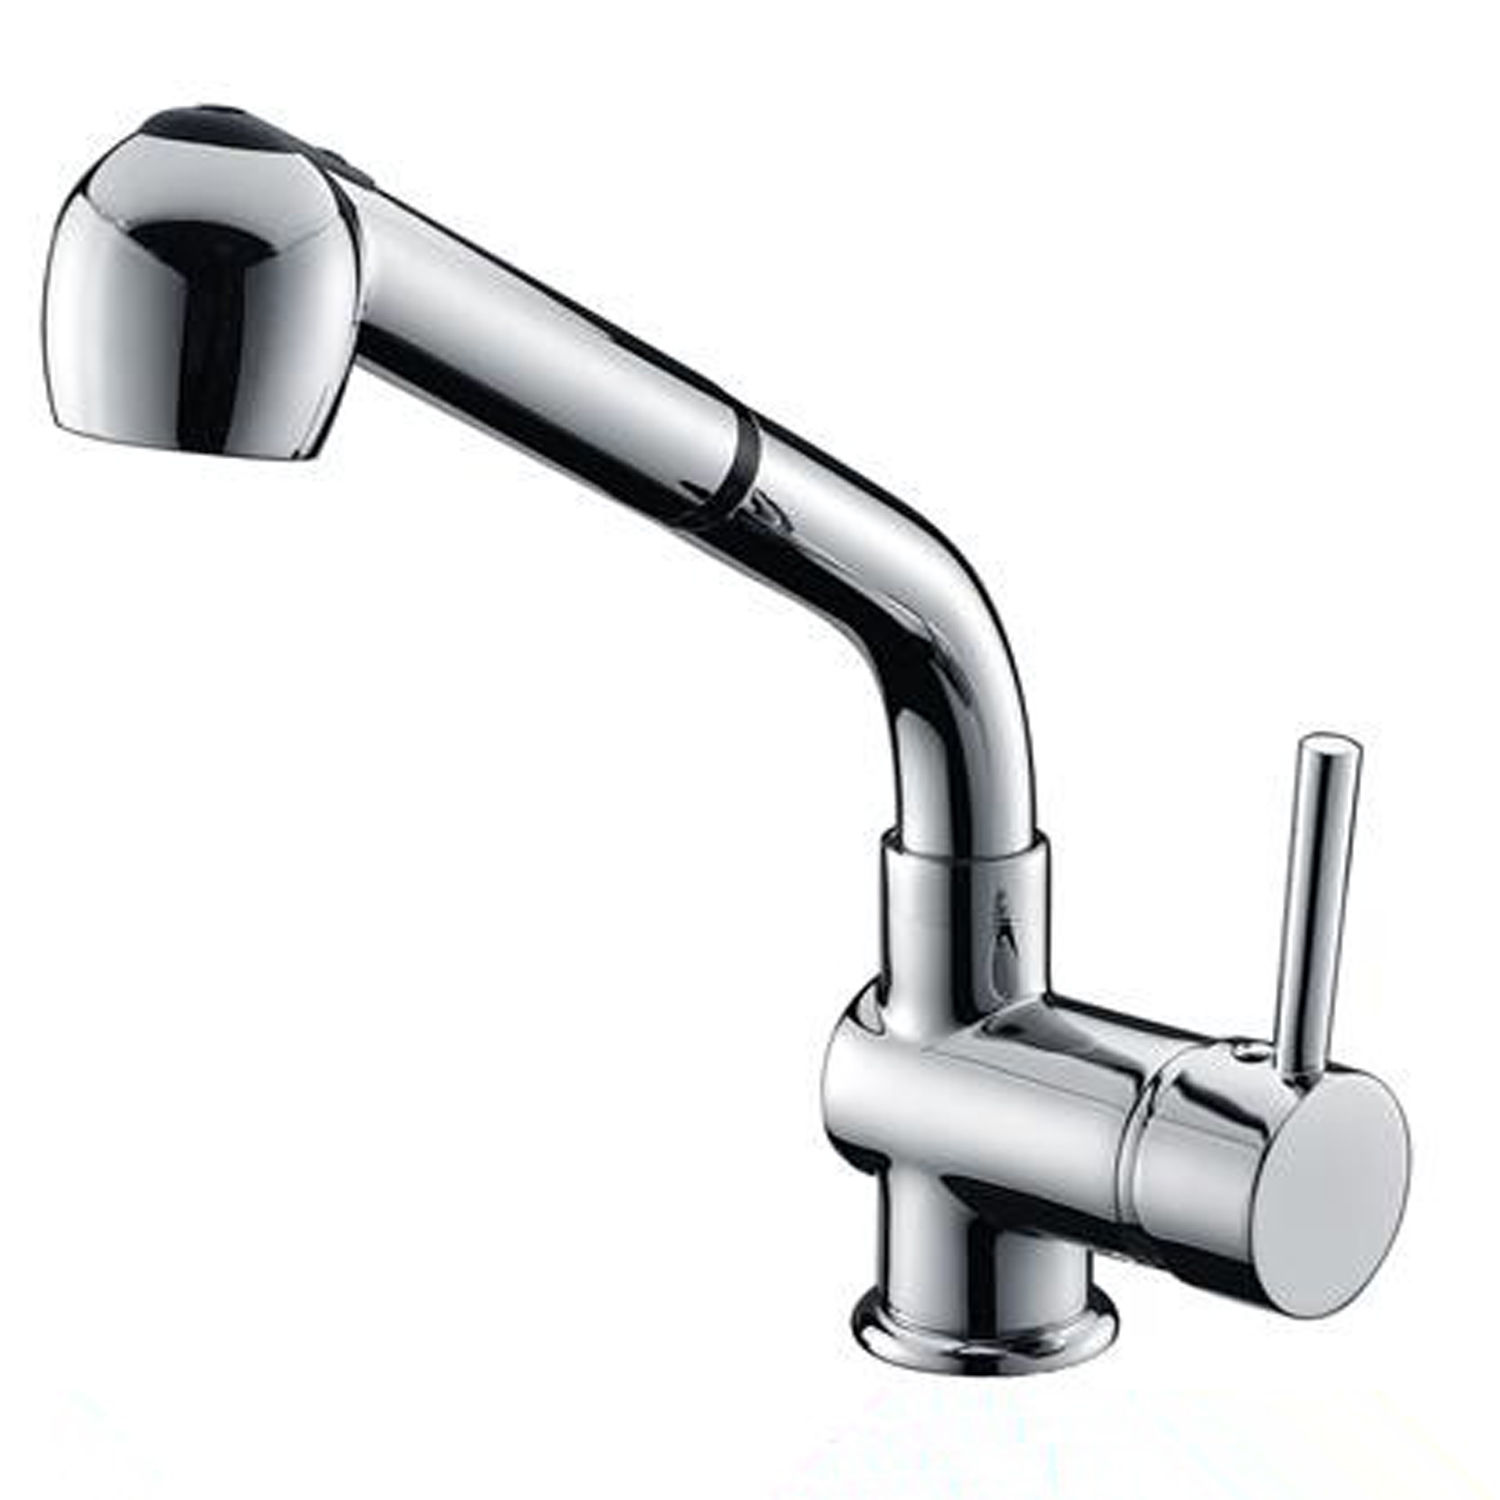 square kitchen faucet best knobs wall brass watermark silver basin sink bath spa